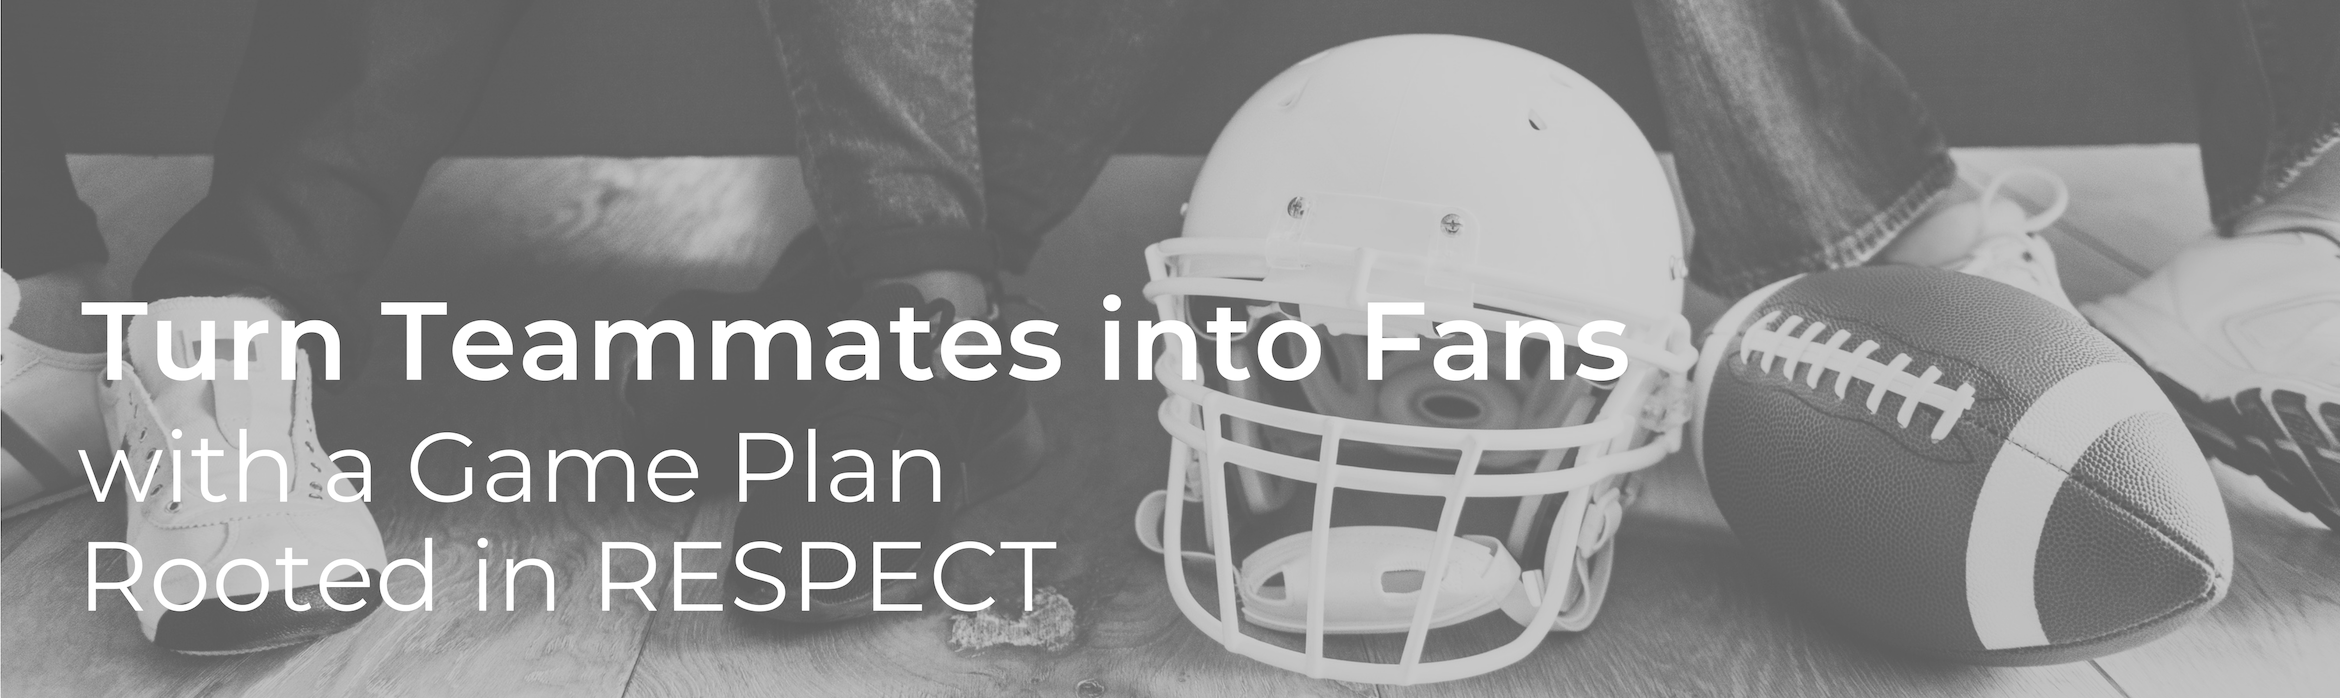 Turn Teammates into Fans with a Game Plan Rooted in RESPECT